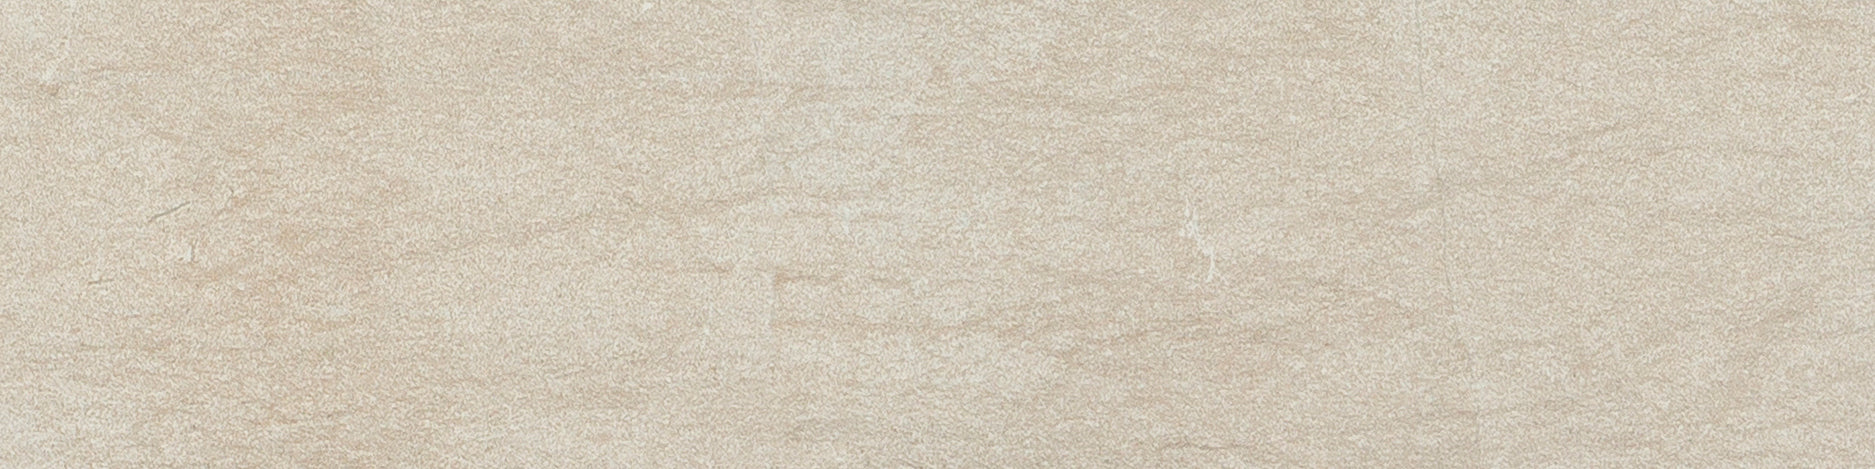 Foussana Beige Field Tile  High Honed/Undulated 3